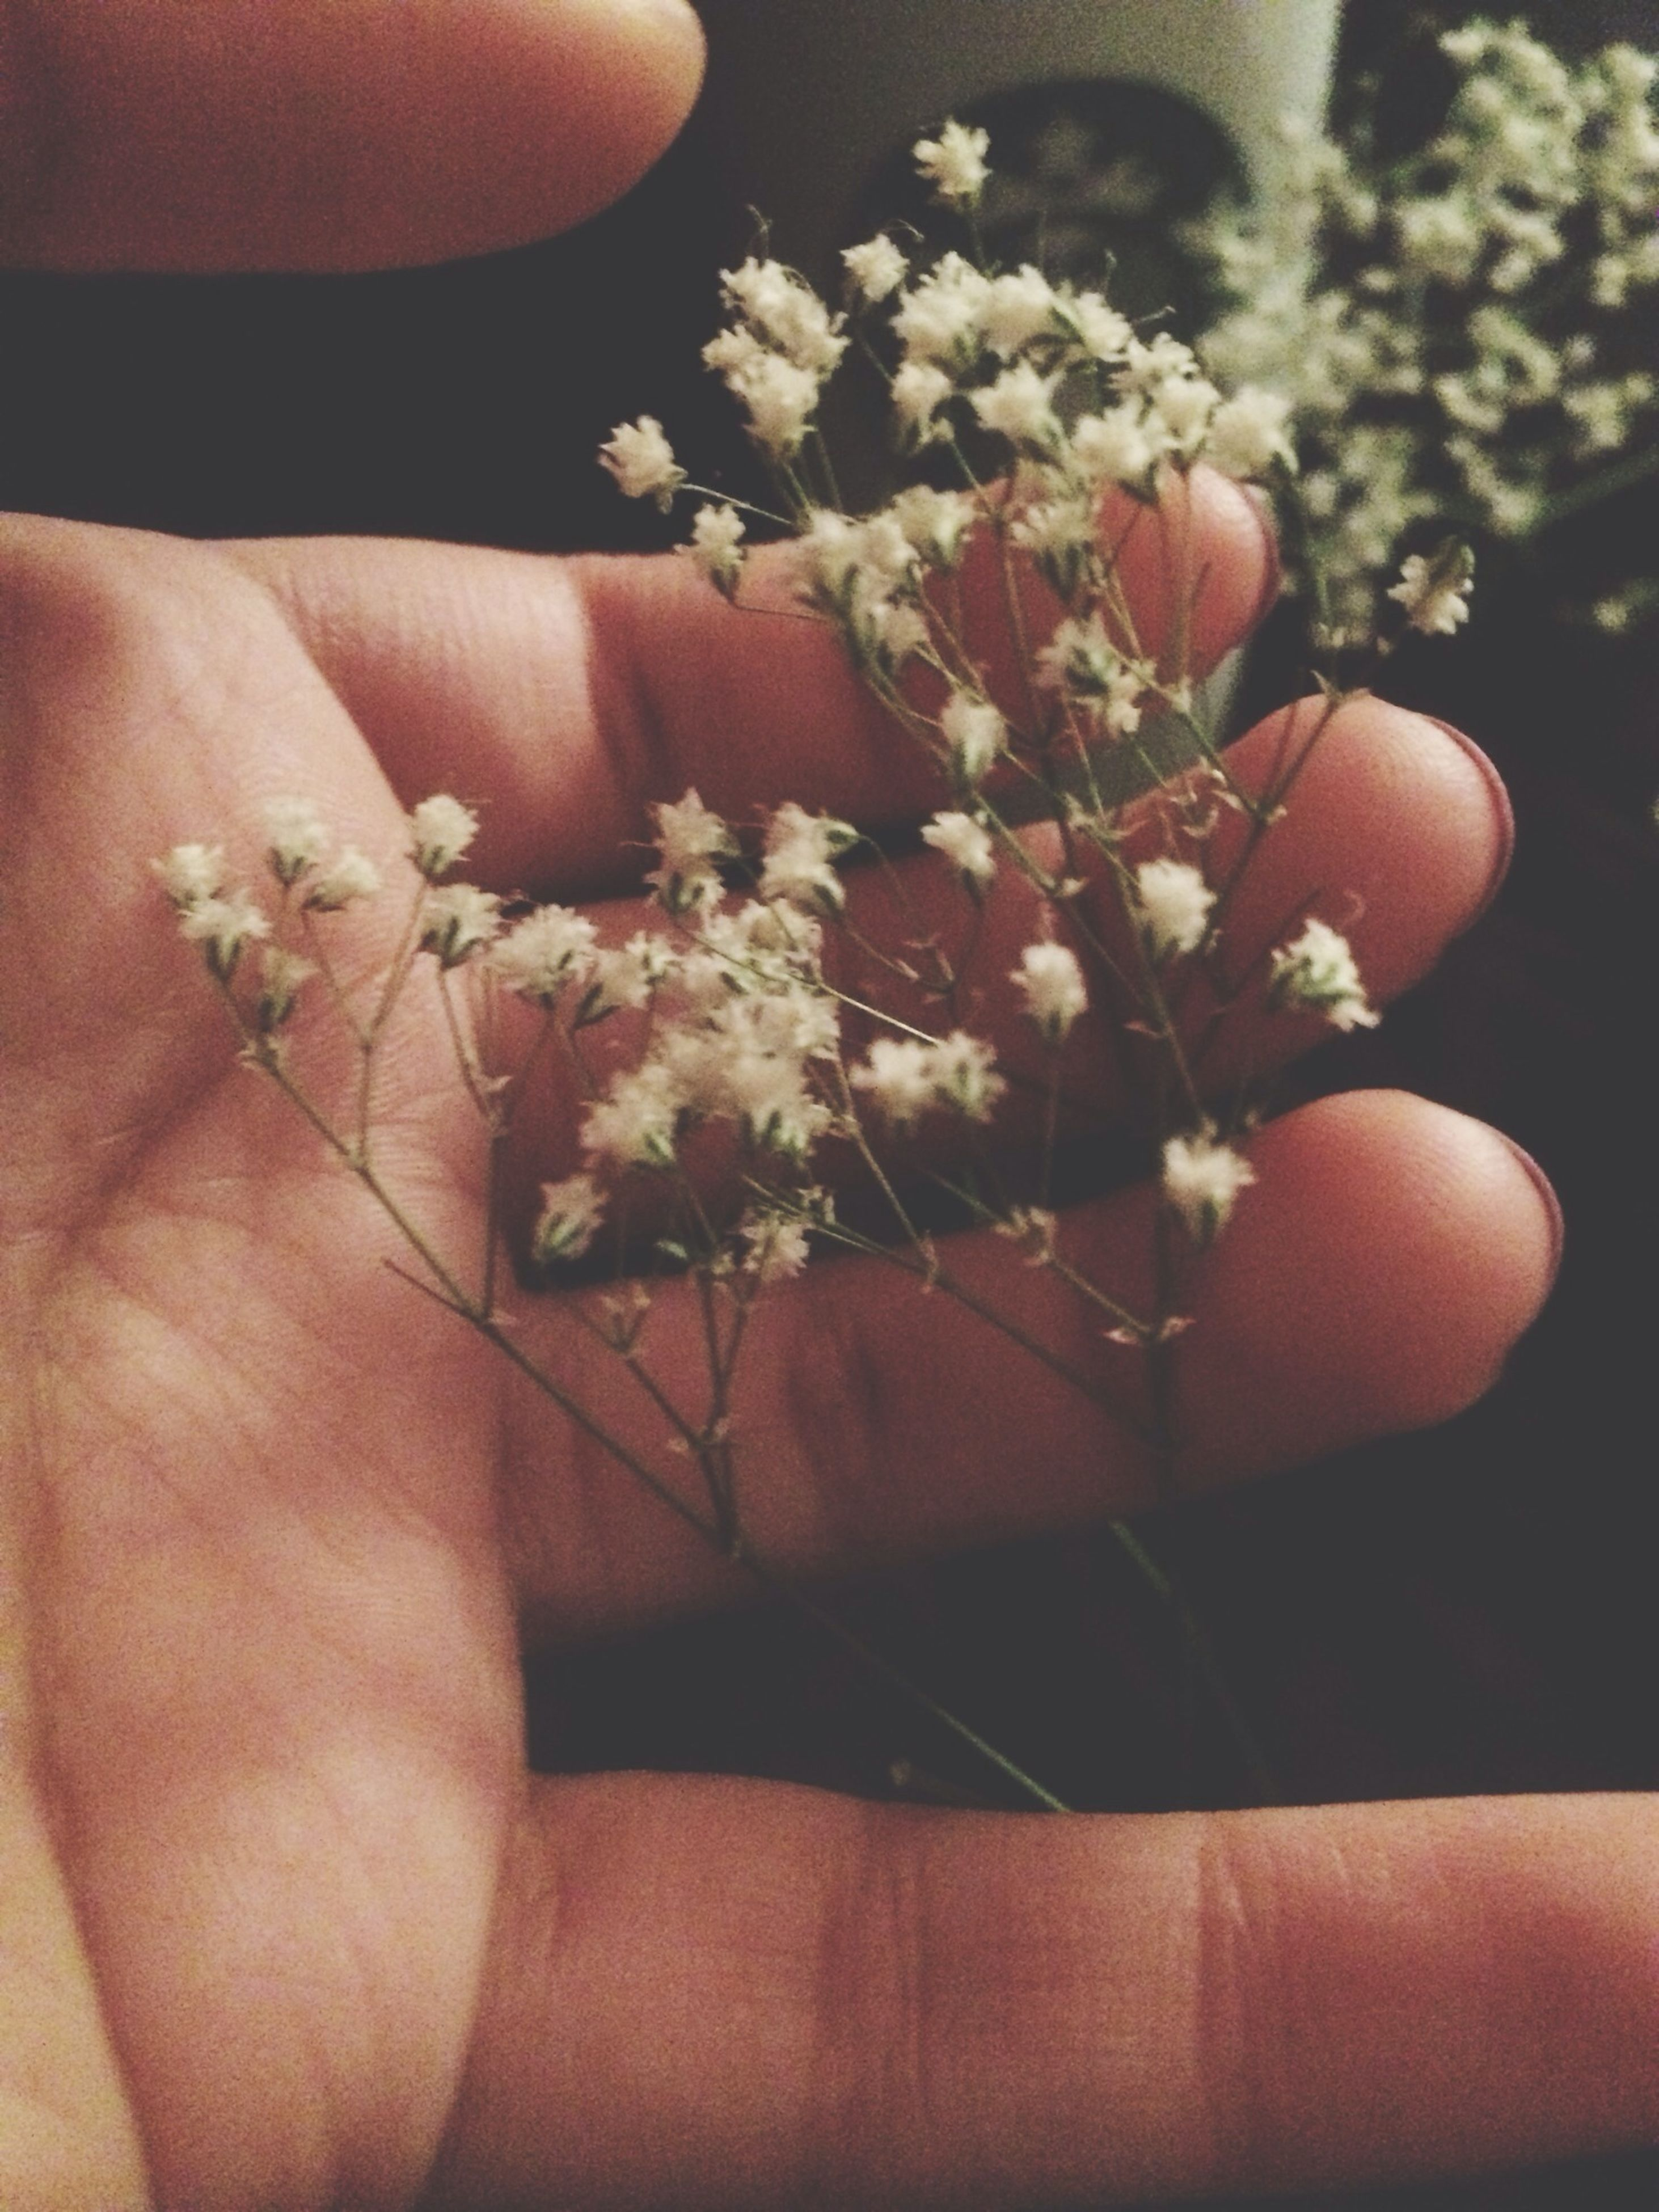 person, flower, holding, indoors, part of, freshness, fragility, cropped, human finger, close-up, unrecognizable person, personal perspective, lifestyles, petal, nature, home interior